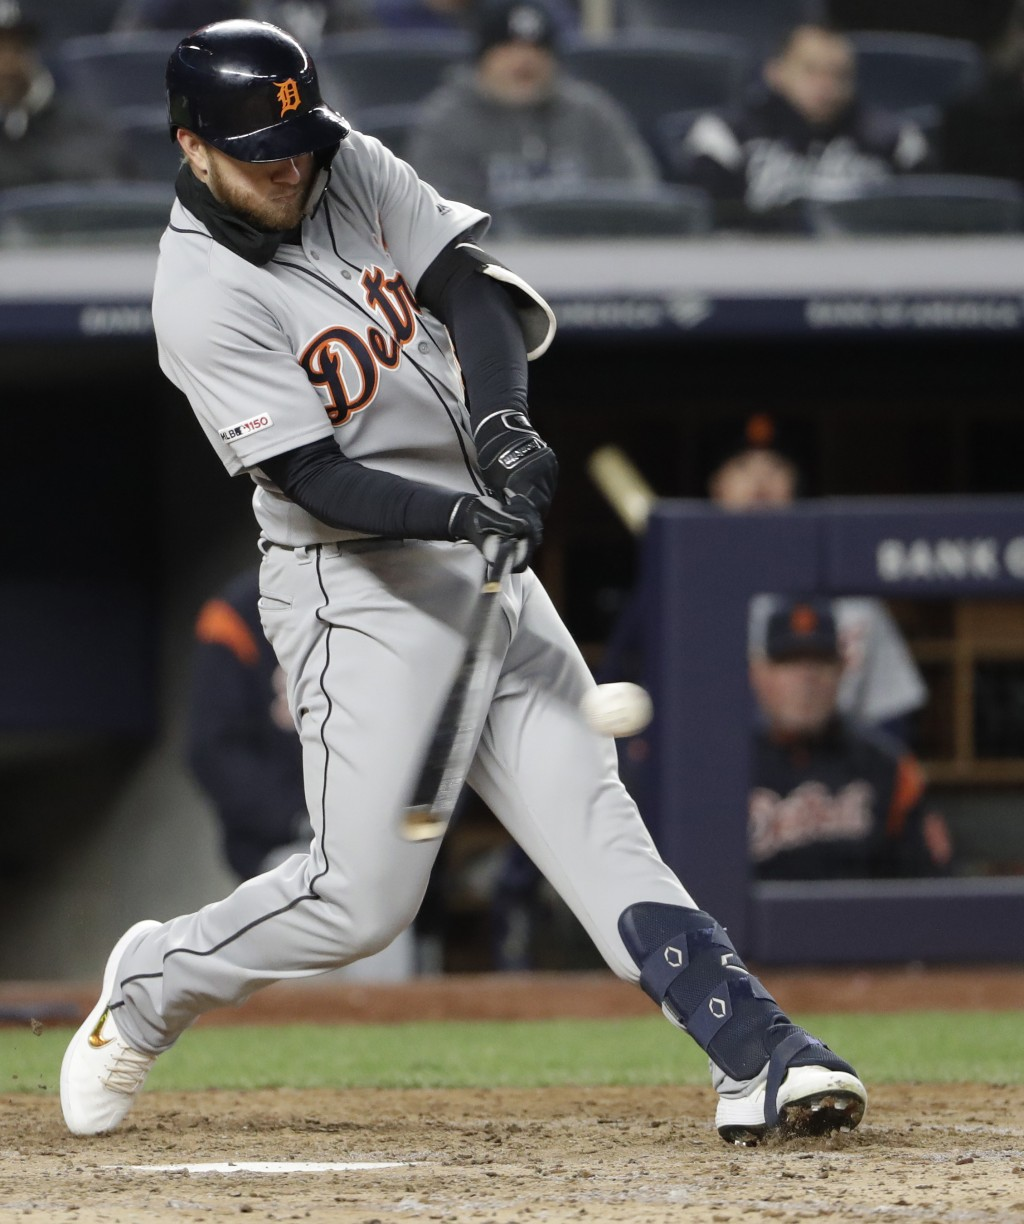 Detroit Tigers' Dustin Peterson hits a ninth-inning RBI double to drive in the winning run in the Tigers 3-1 victory over the New York Yankees in a ba